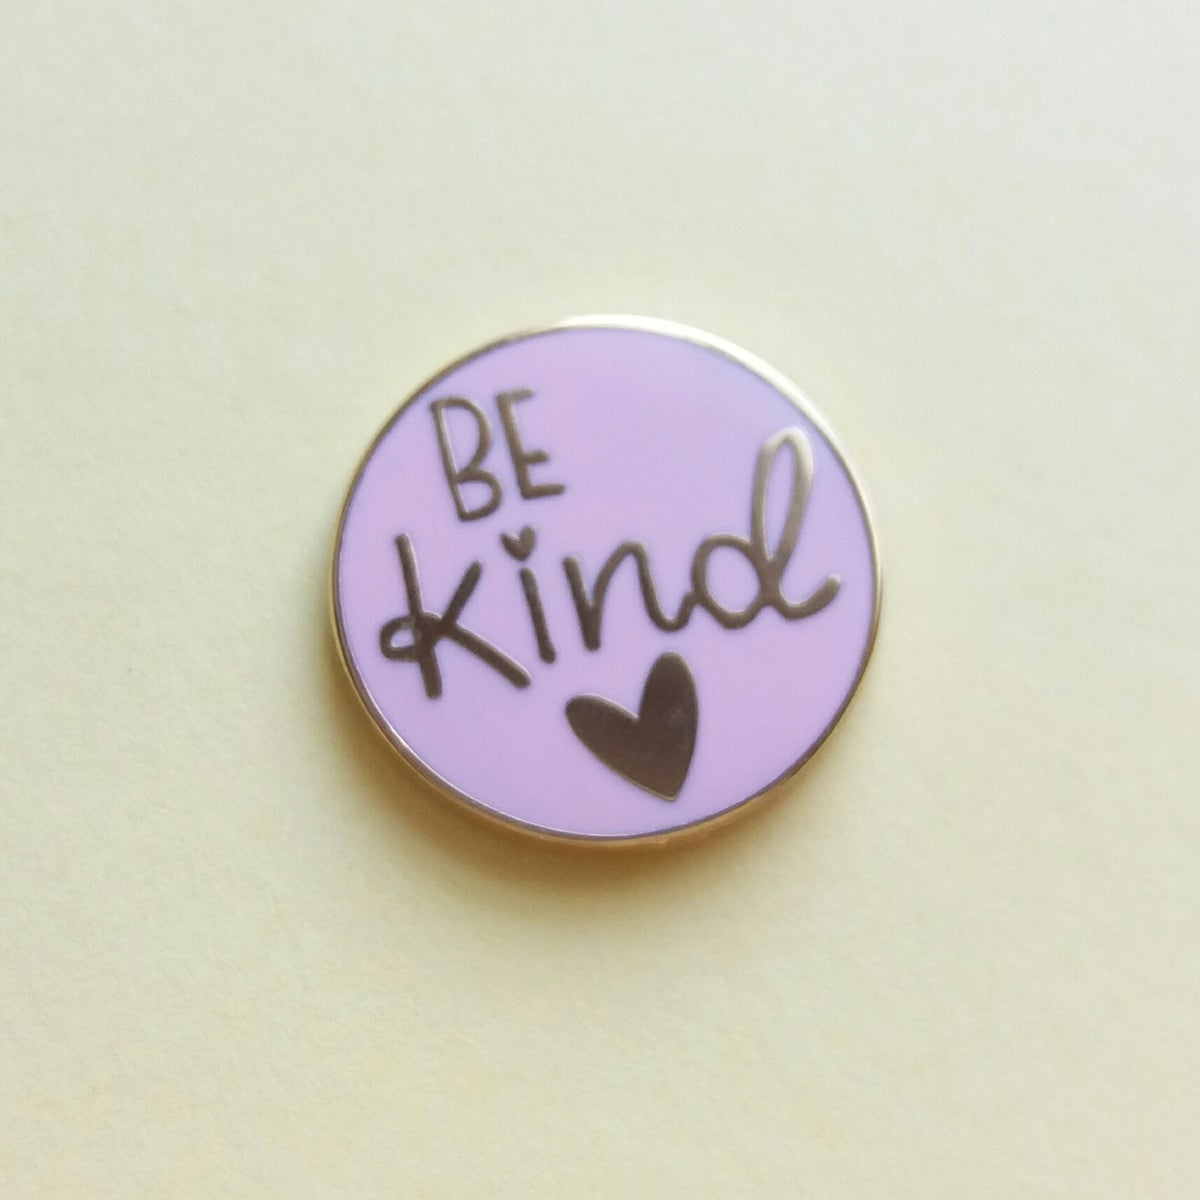 Be Kind - Hard Enamel Pin